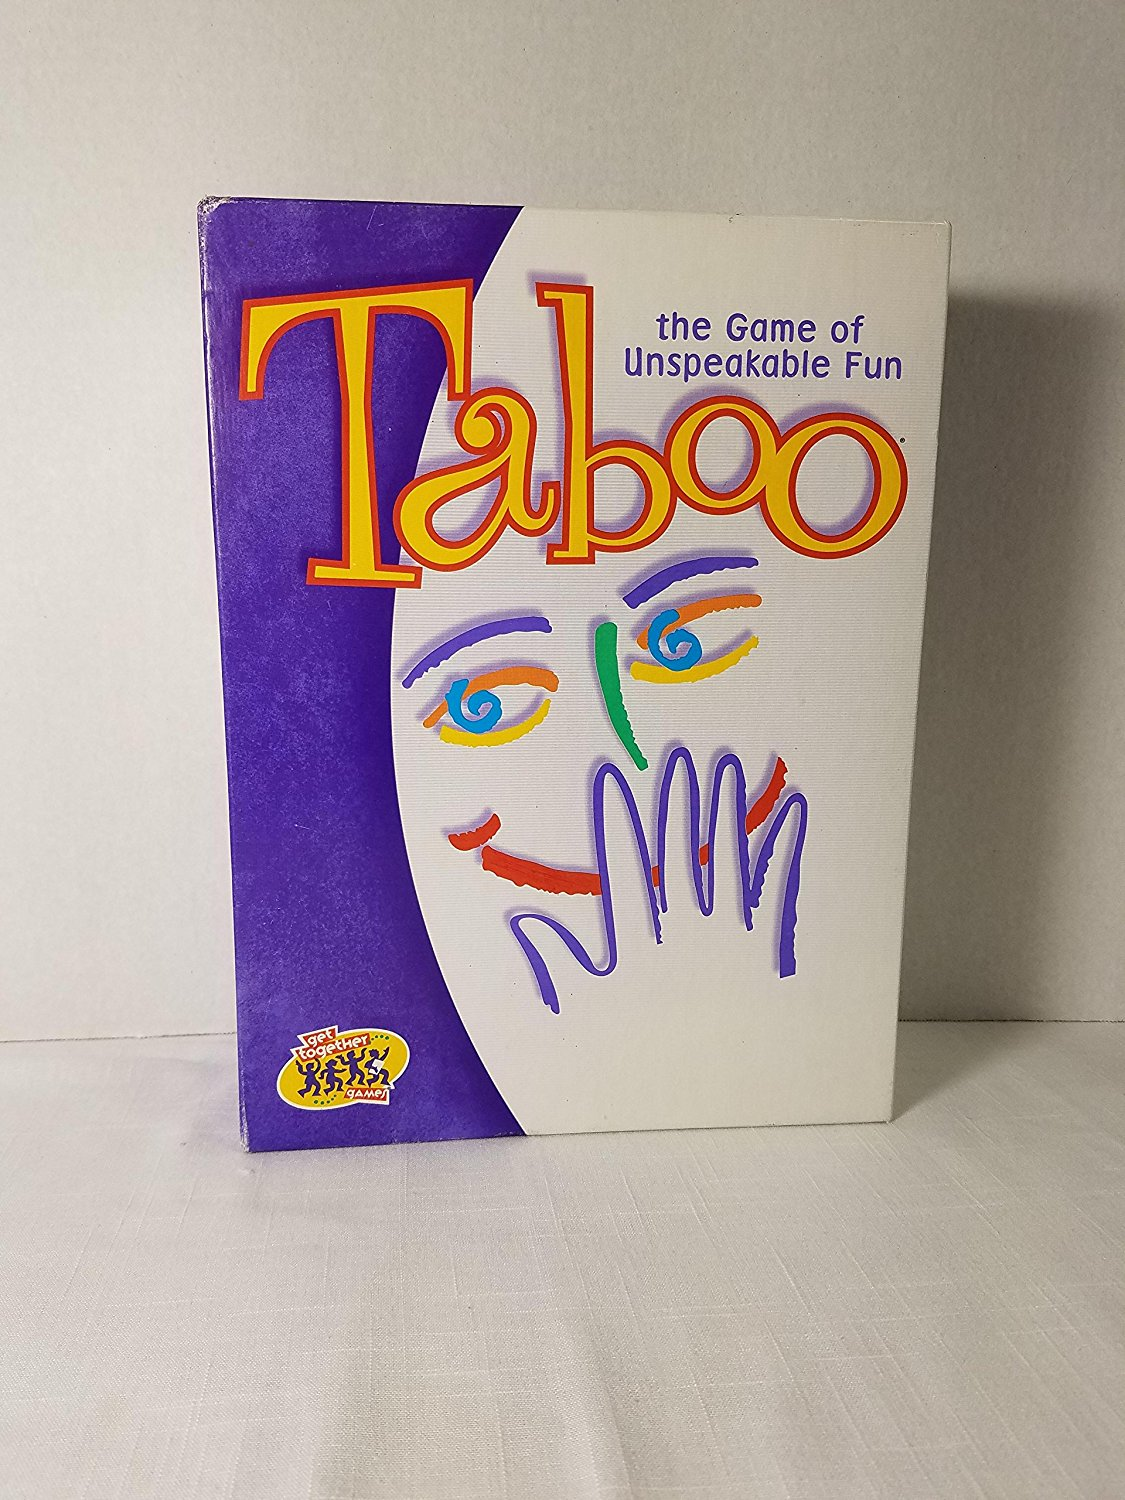 Click here to buy Taboo the Game of Unspeakable Fun (2000 Edition), For Adult By Milton Bradley Ship from US.